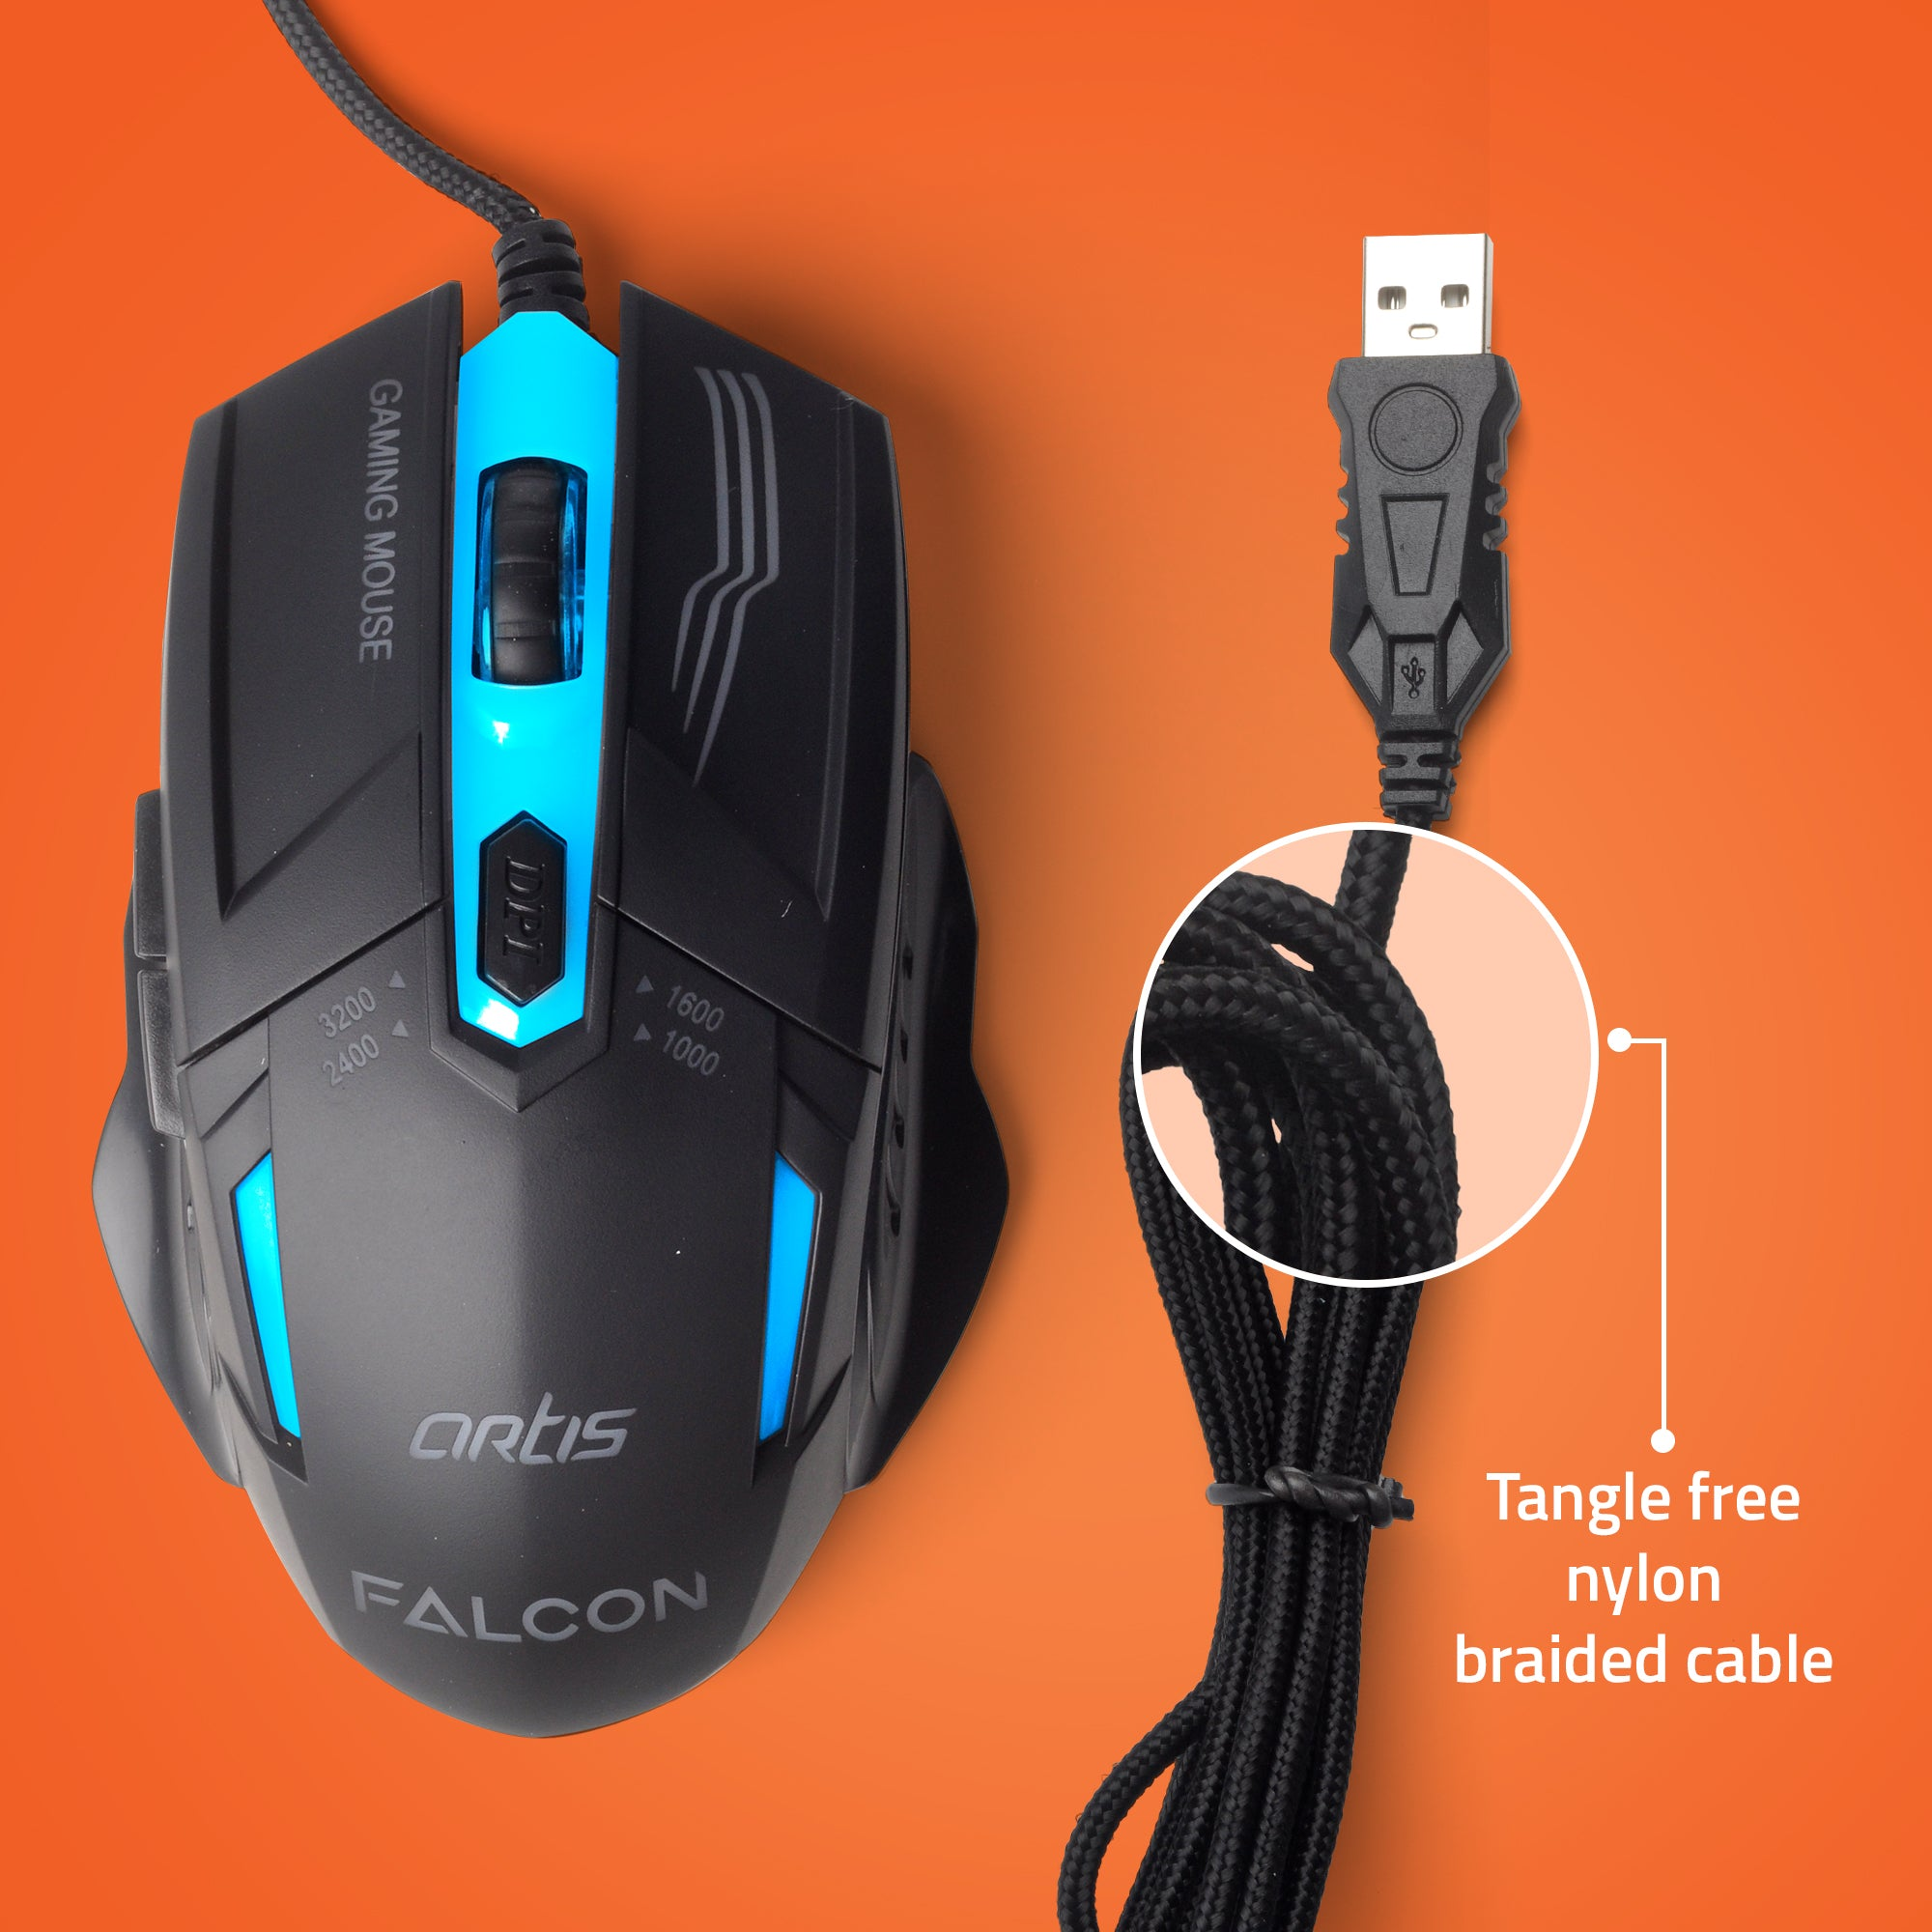 FALCON Optical Gaming Mouse